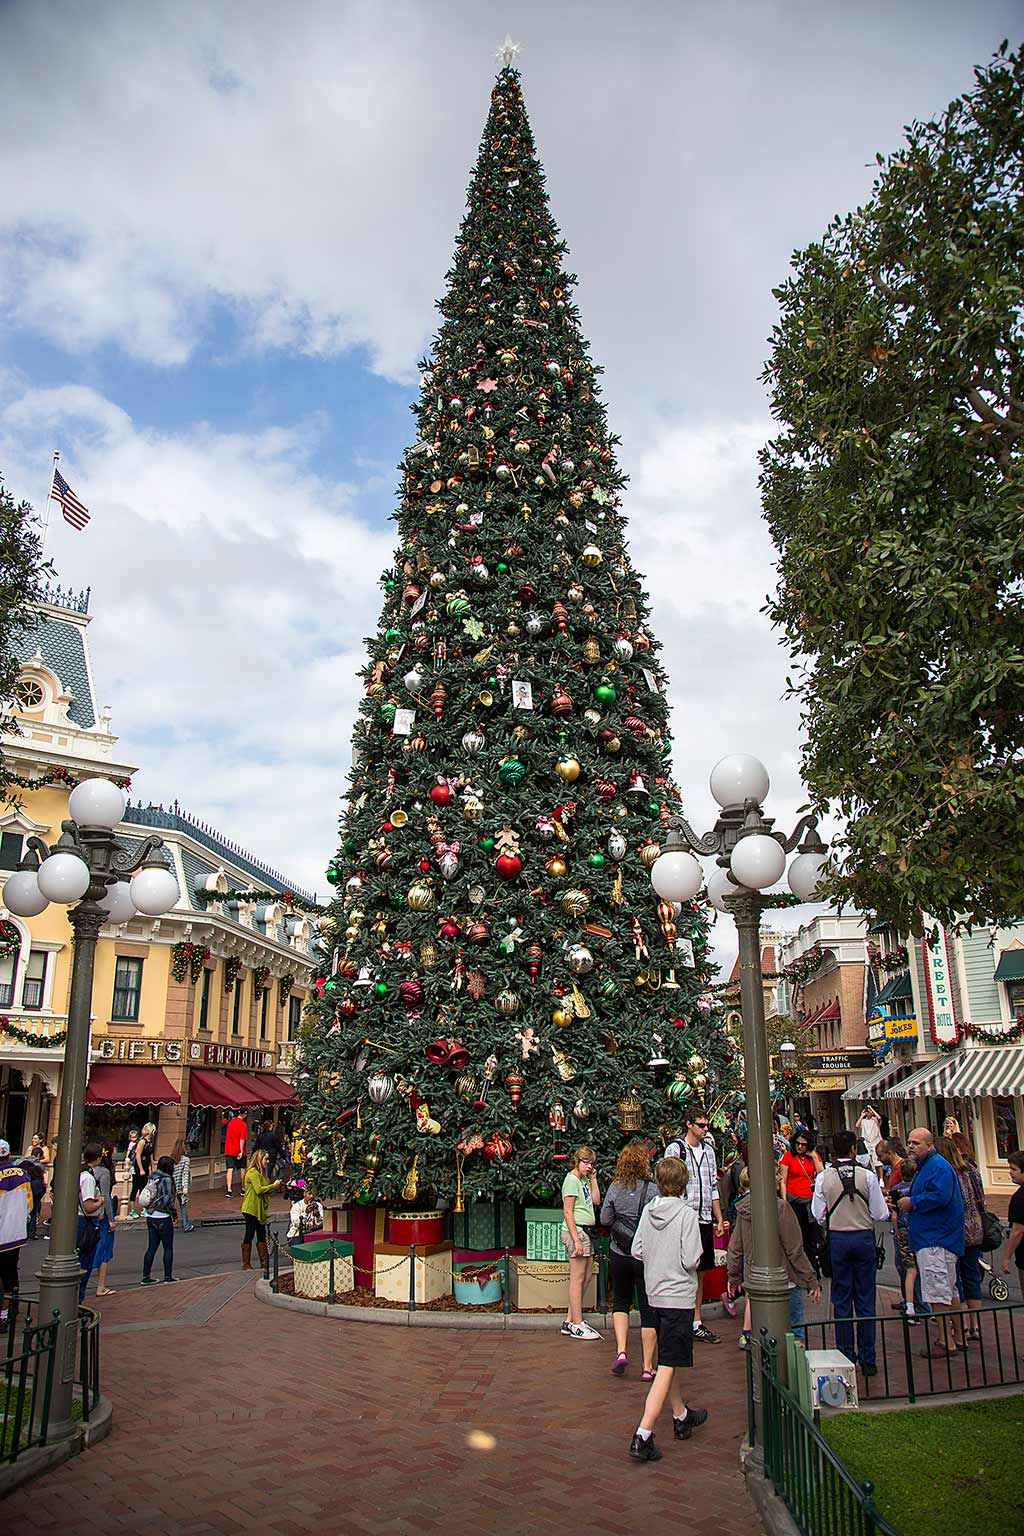 Christmas tree on Main Street U.S.A. in Disneyland